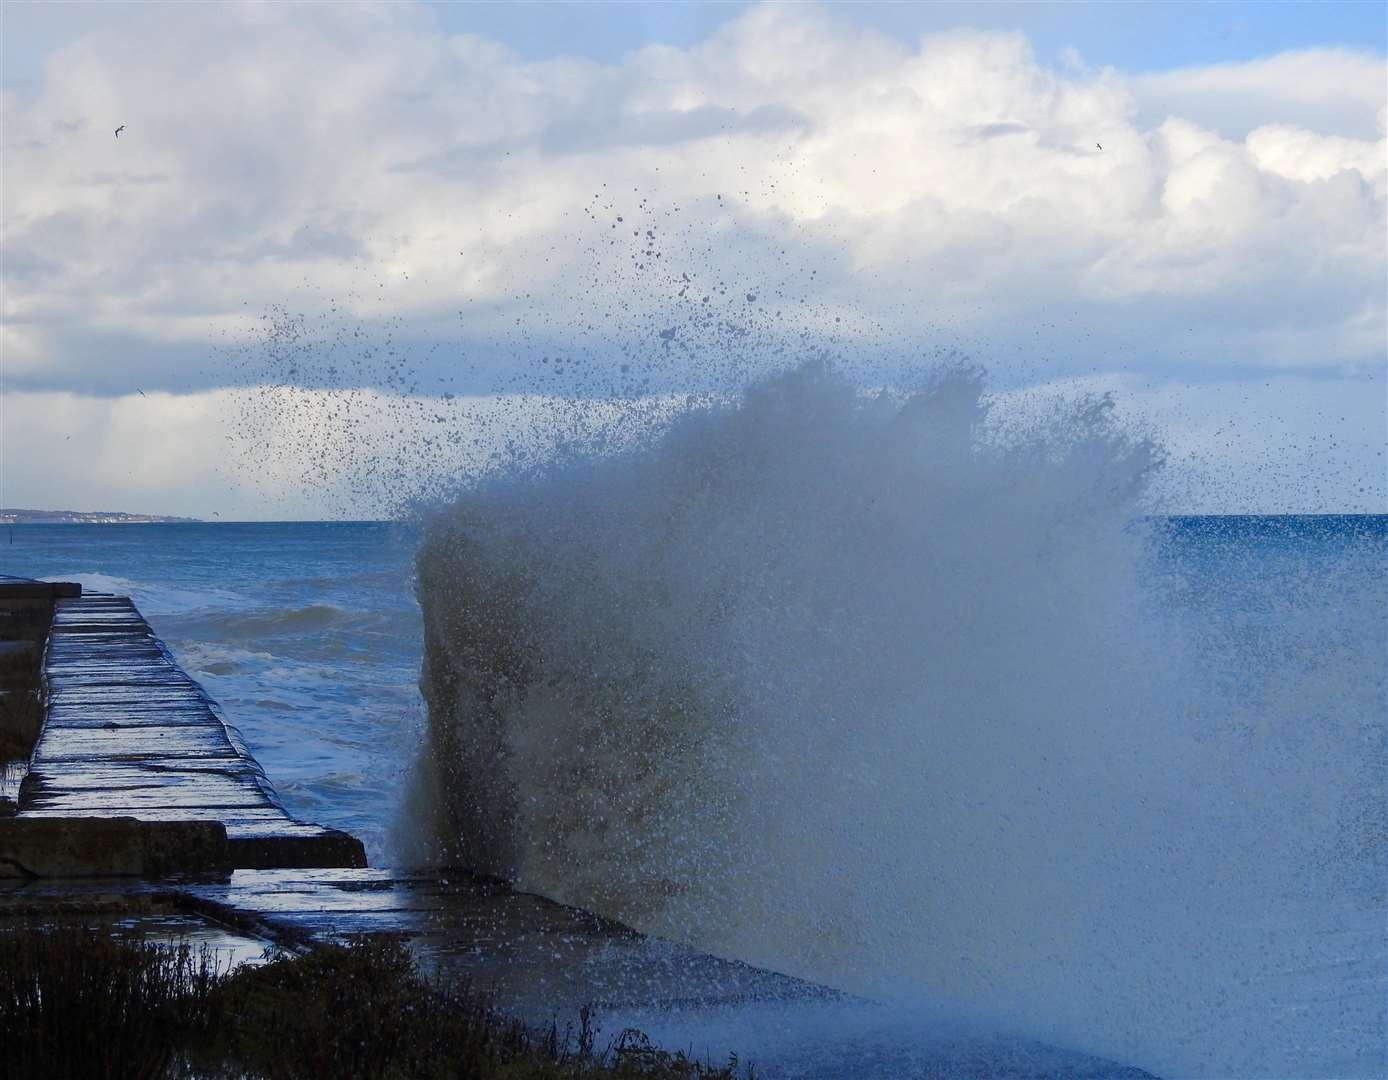 Fierce waves crash over the edge of a wall at Kingsdown Rifle Range Picture: Dean Macey